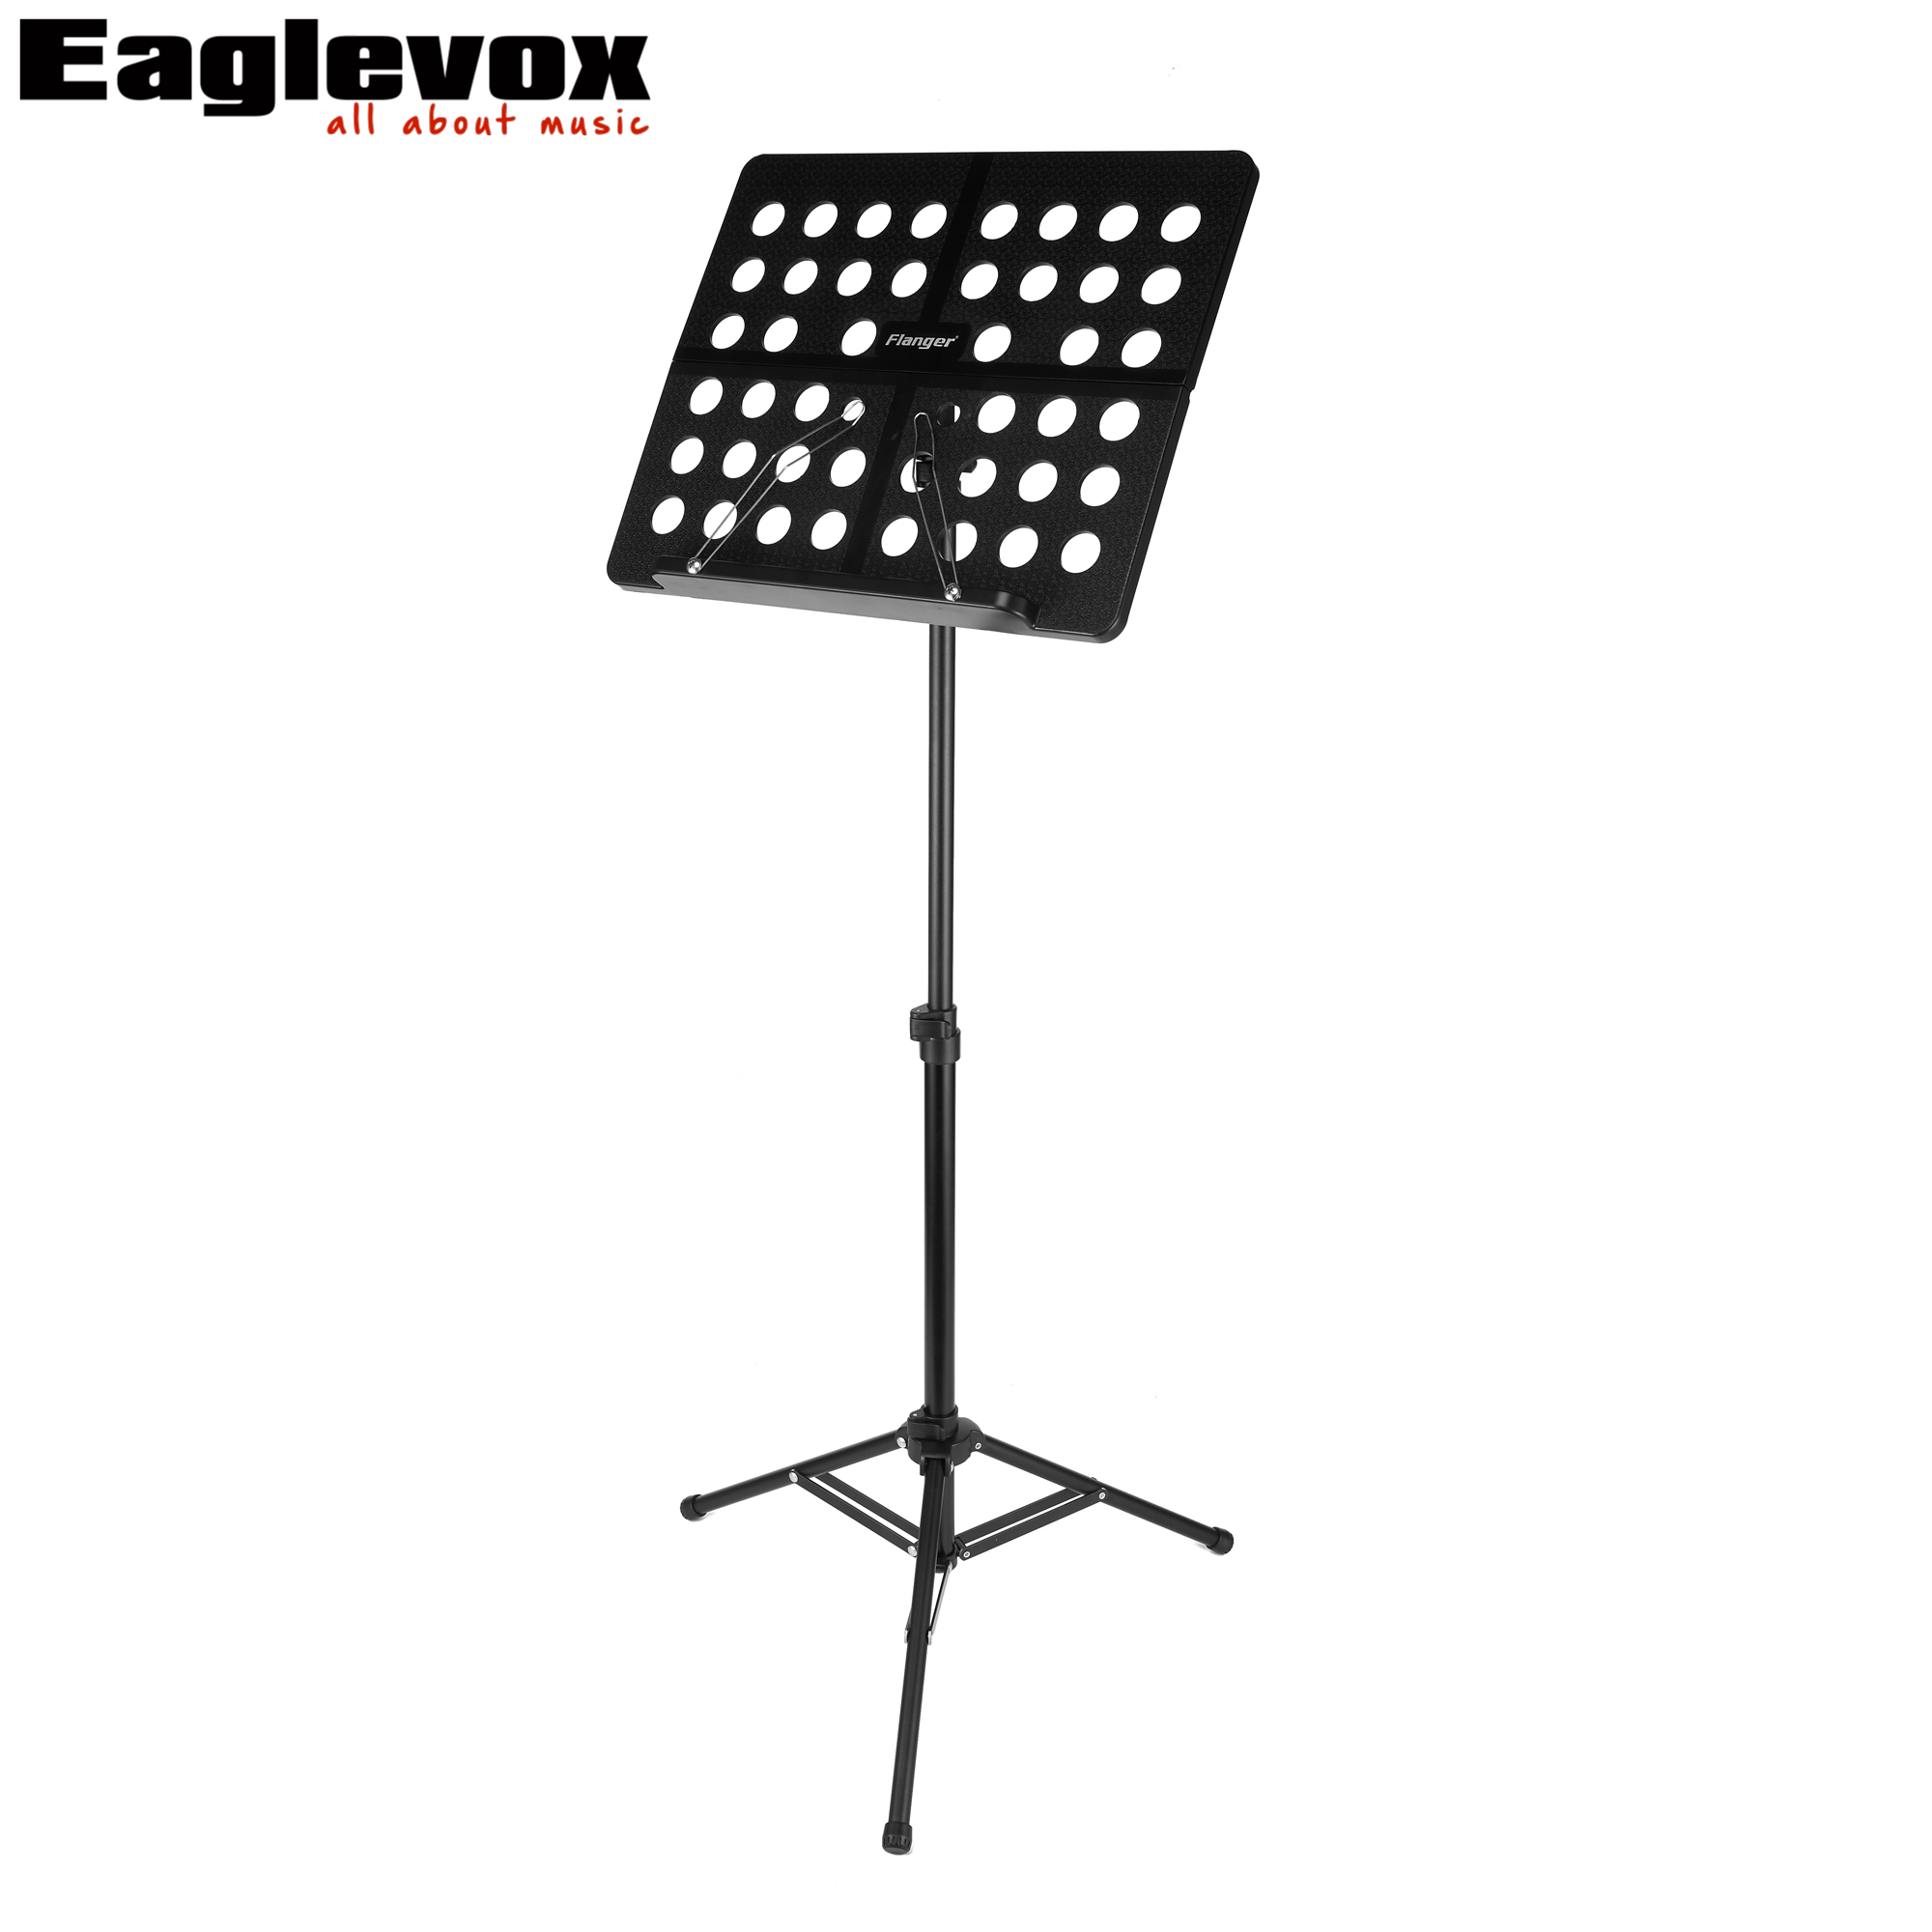 Folding Adjustable Black Music Stand for Sheet Music 70-145cm Adjustable Height Portable Metal Holder with Carrying Pad Bag colourful sheet folding music stand metal tripod stand holder with soft case with carrying bag free shipping wholesales